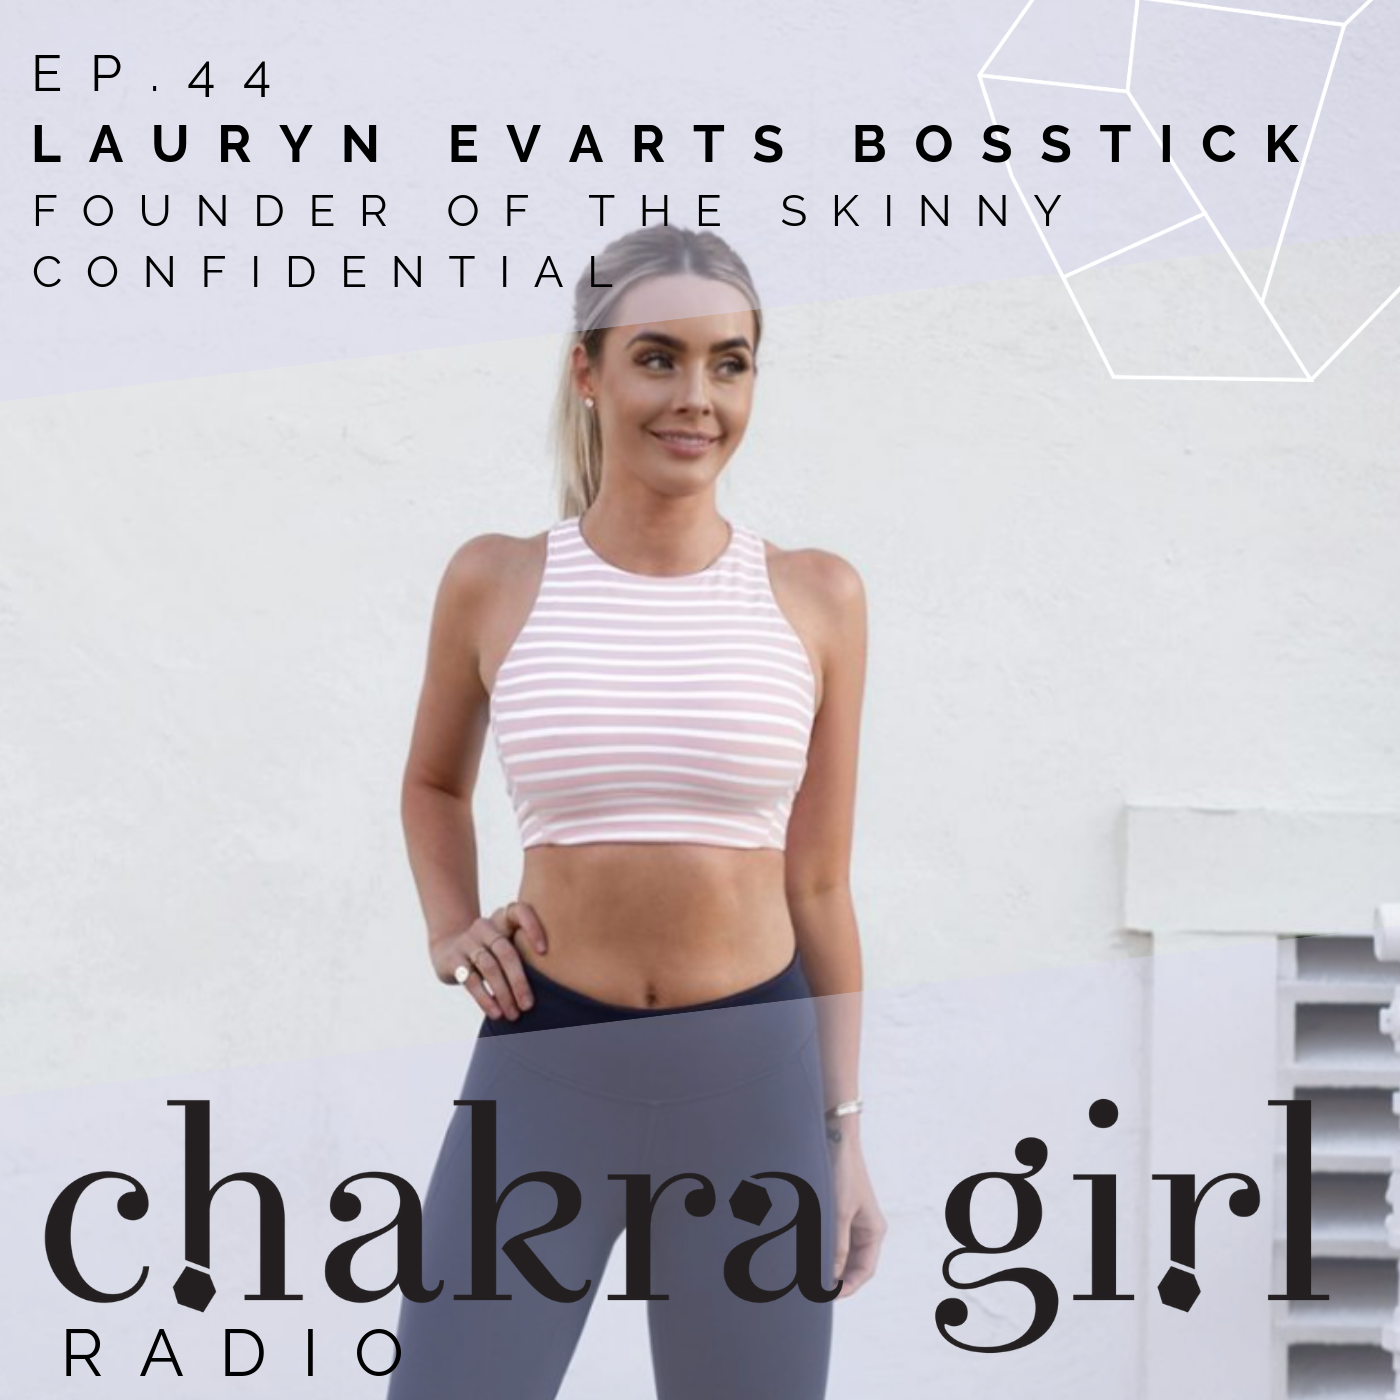 Lauryn Evarts Bosstick on CHAKRA GIRL RADIO.png